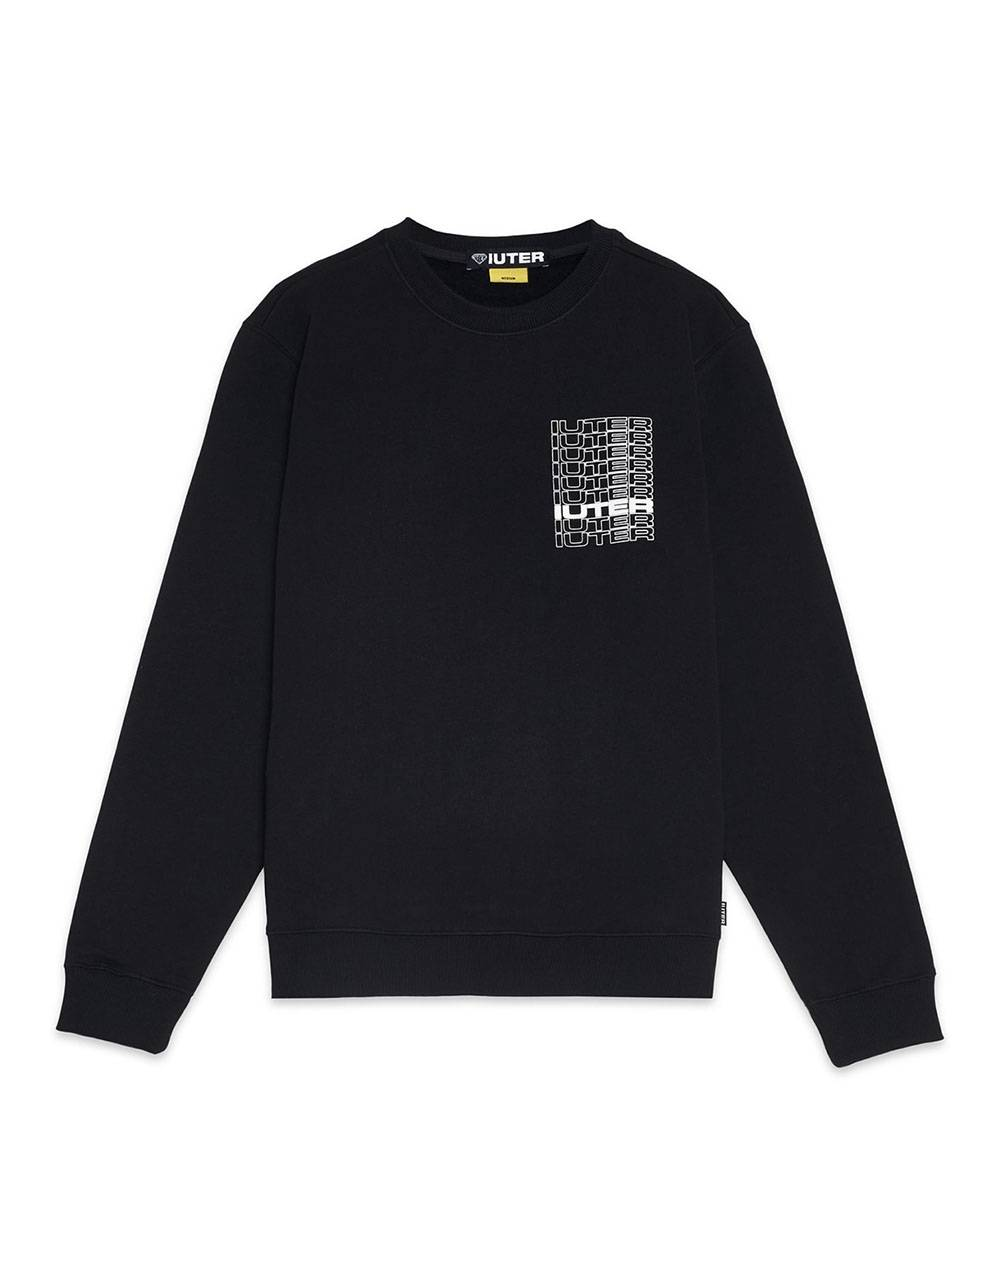 Iuter Spine crewneck sweater - Black IUTER Sweater 89,00 €